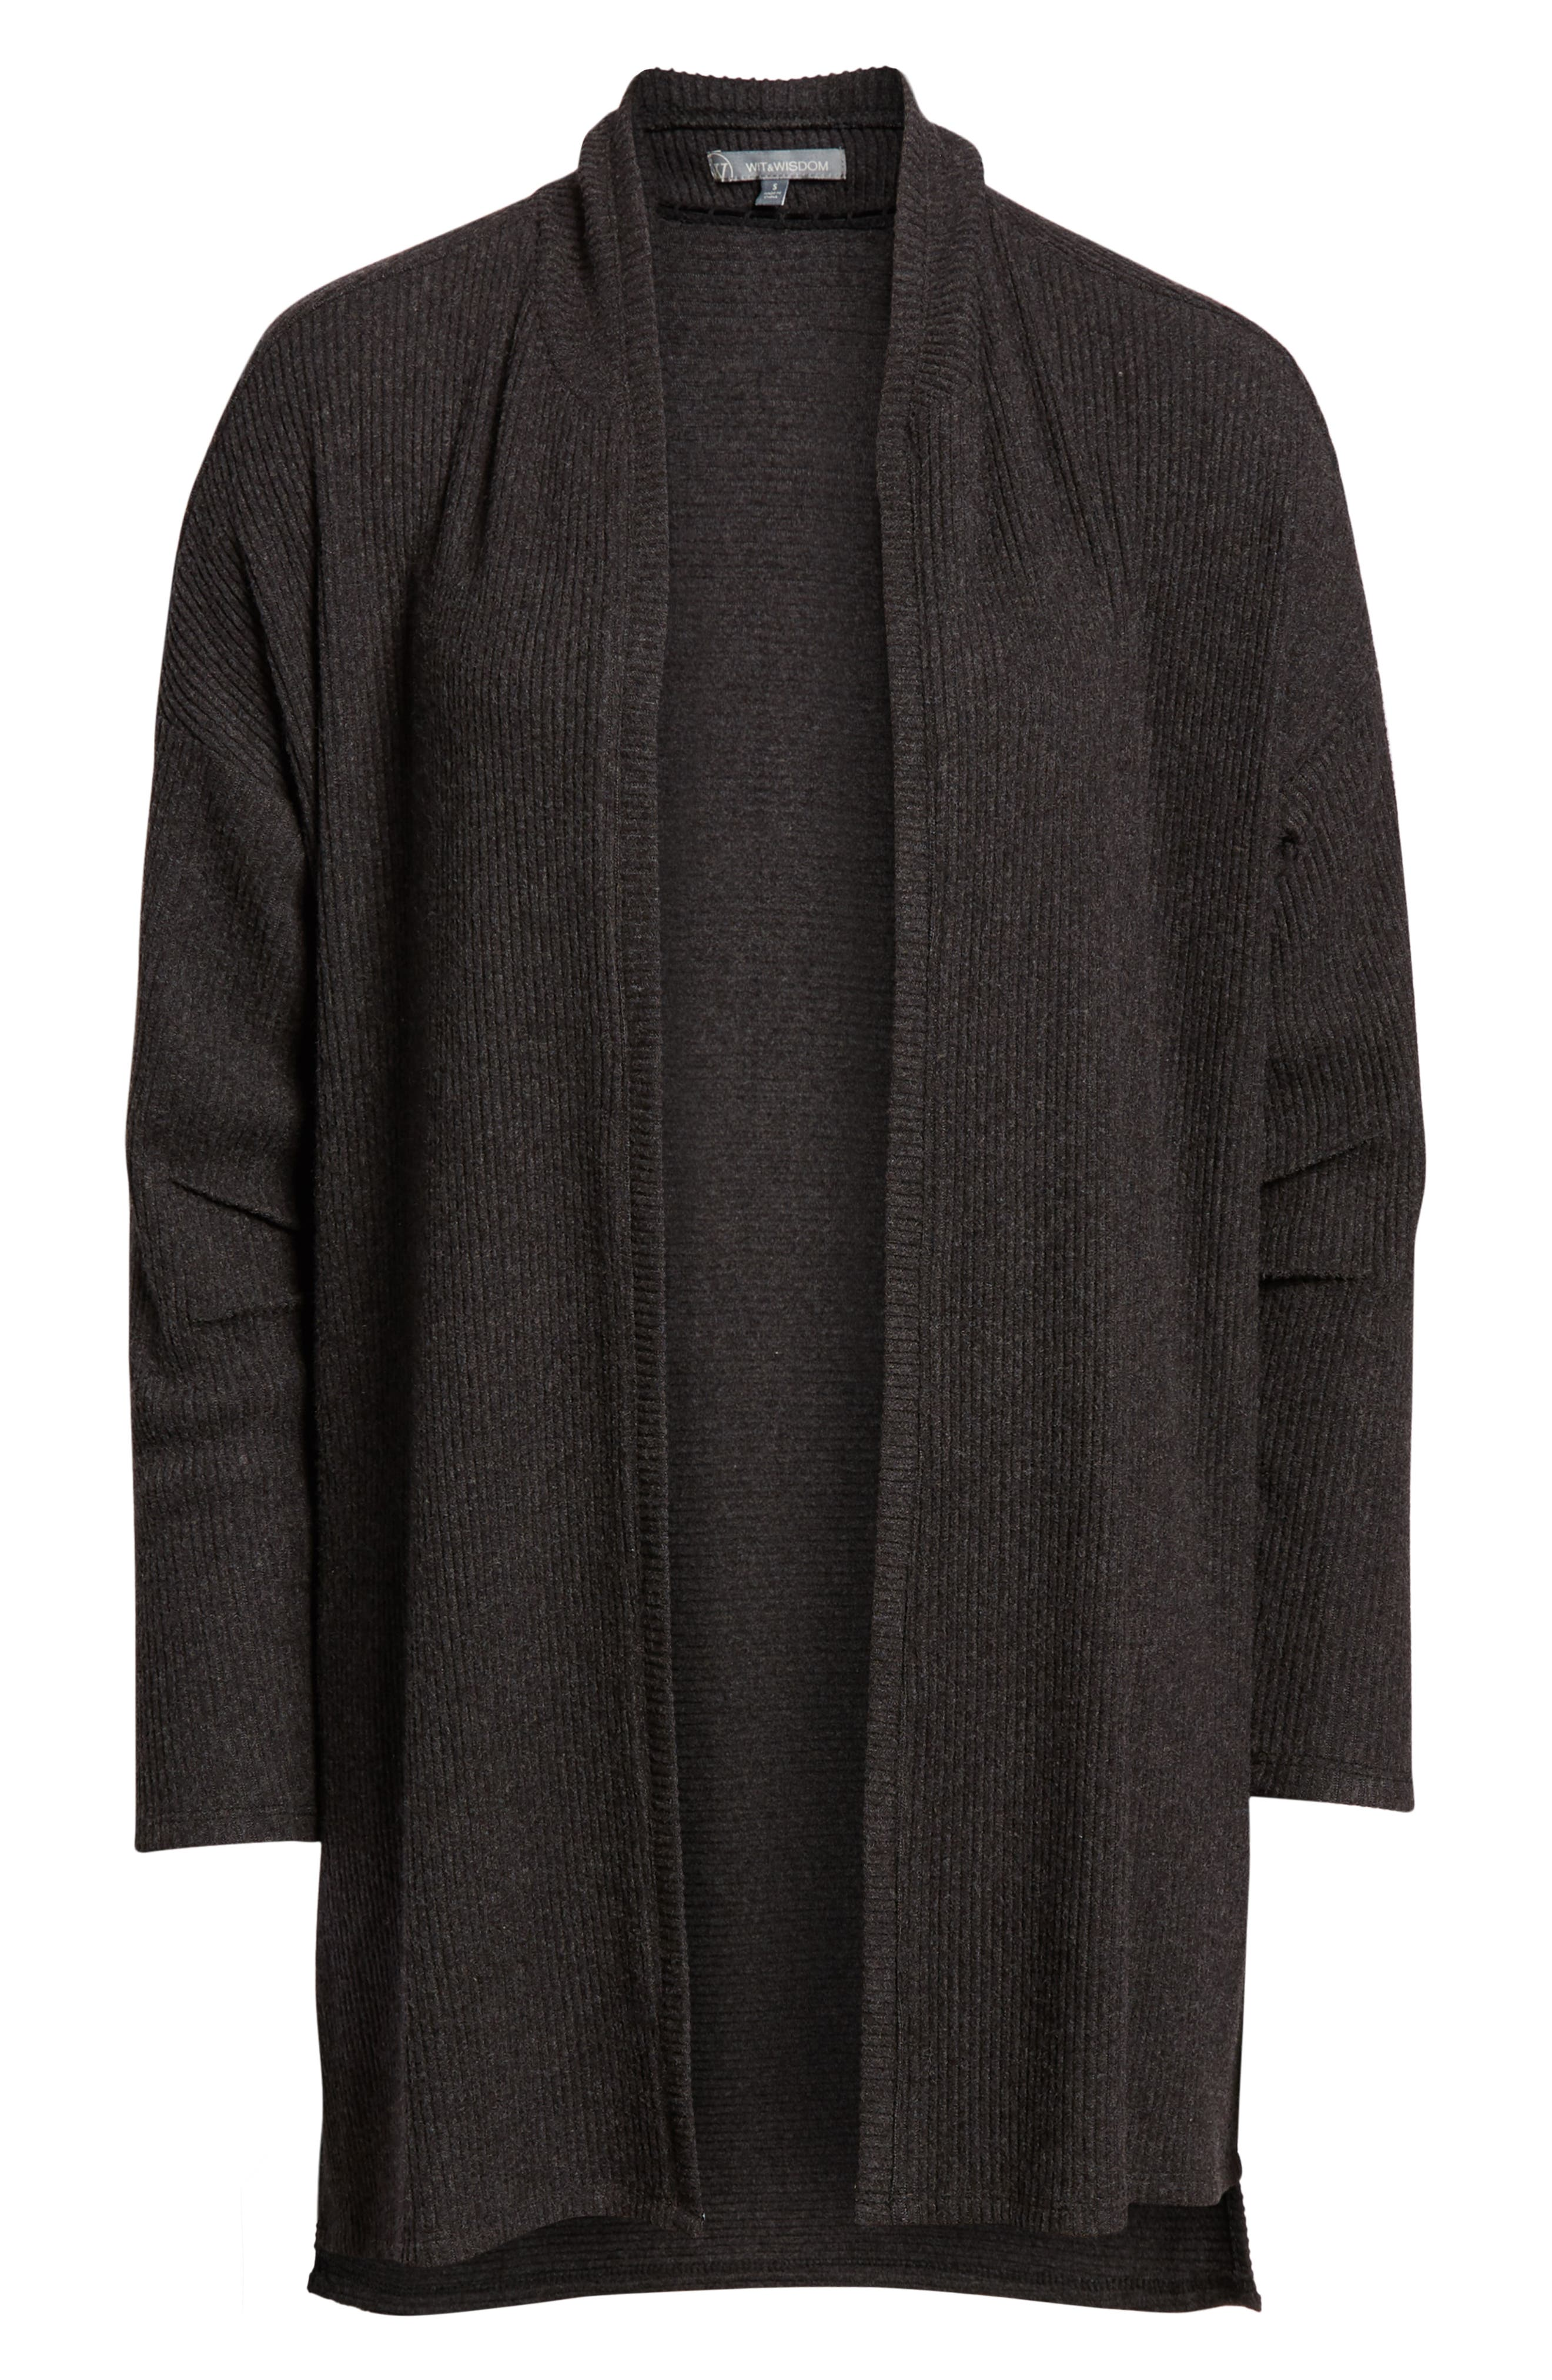 WIT & WISDOM, Ribbed Open Cardigan, Alternate thumbnail 6, color, CHARCOAL